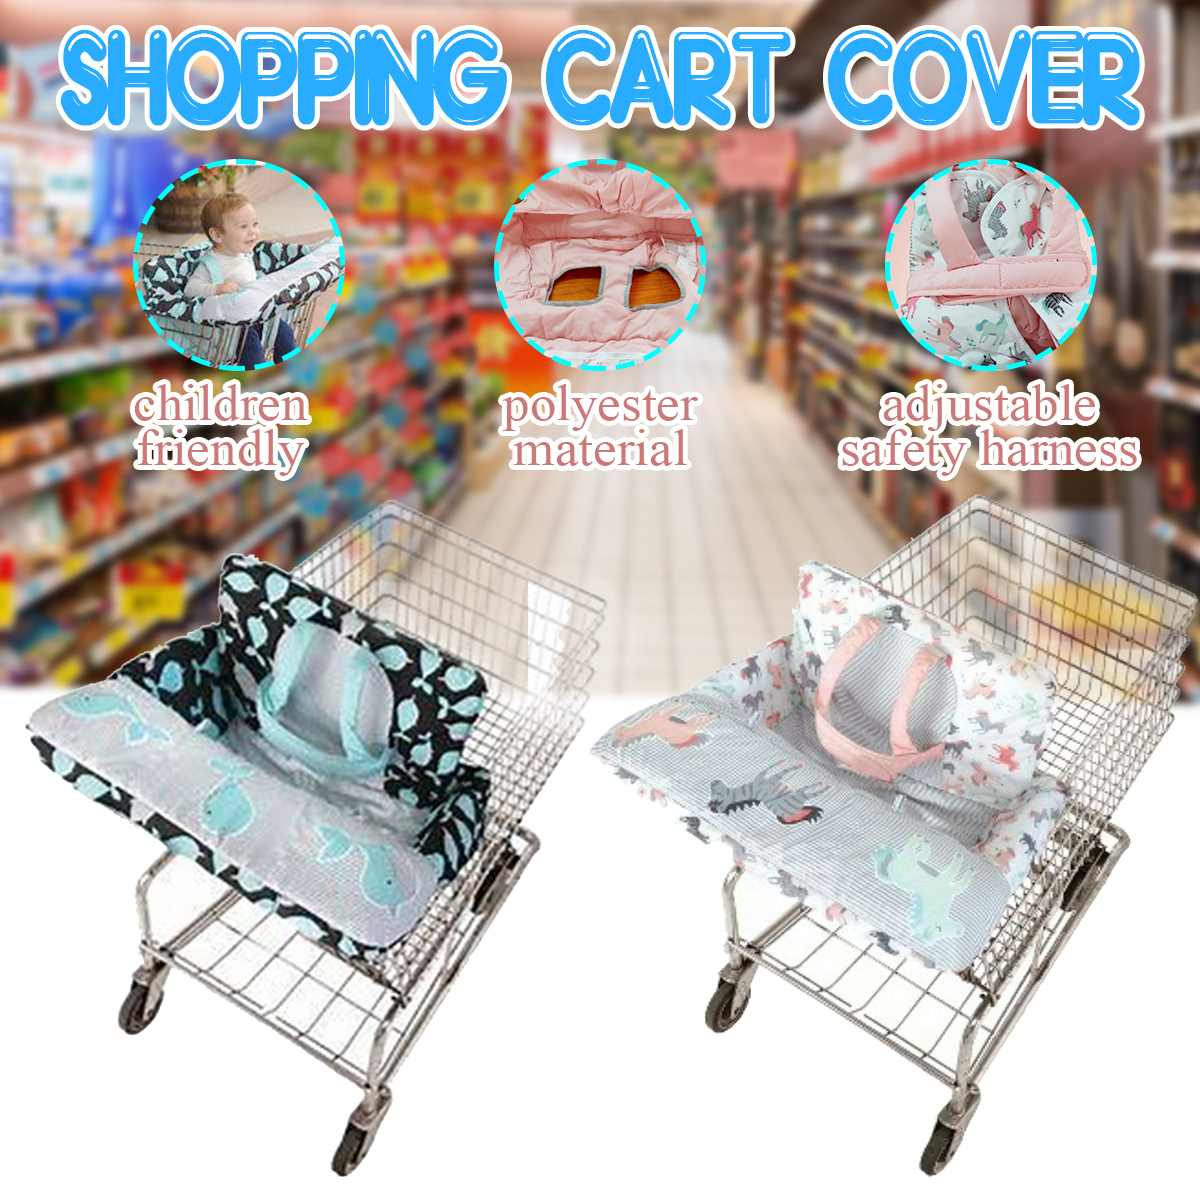 Baby Kid Portable Shopping Cart Cover Pad With Adjustable Safety Harness Baby Shopping Push Cart Protection Cover Safety Seats